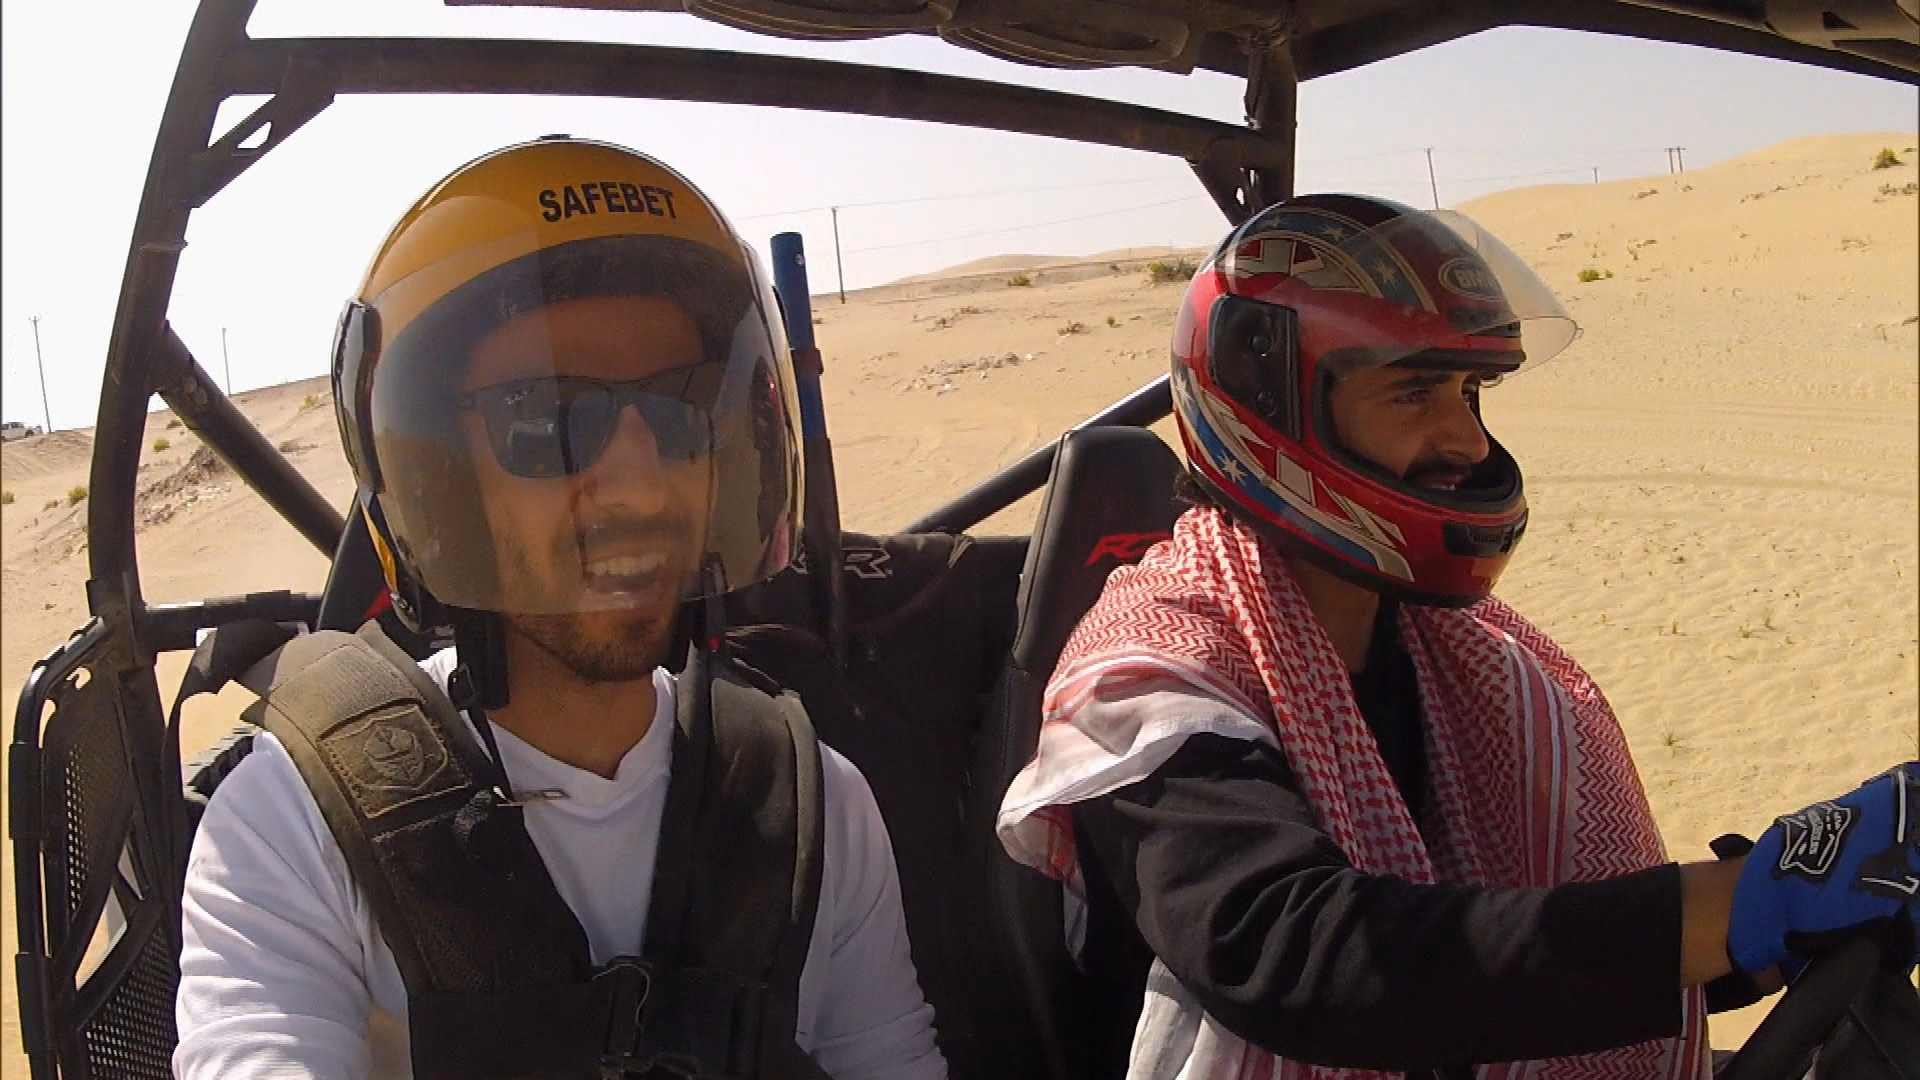 Driving through a dune buggy